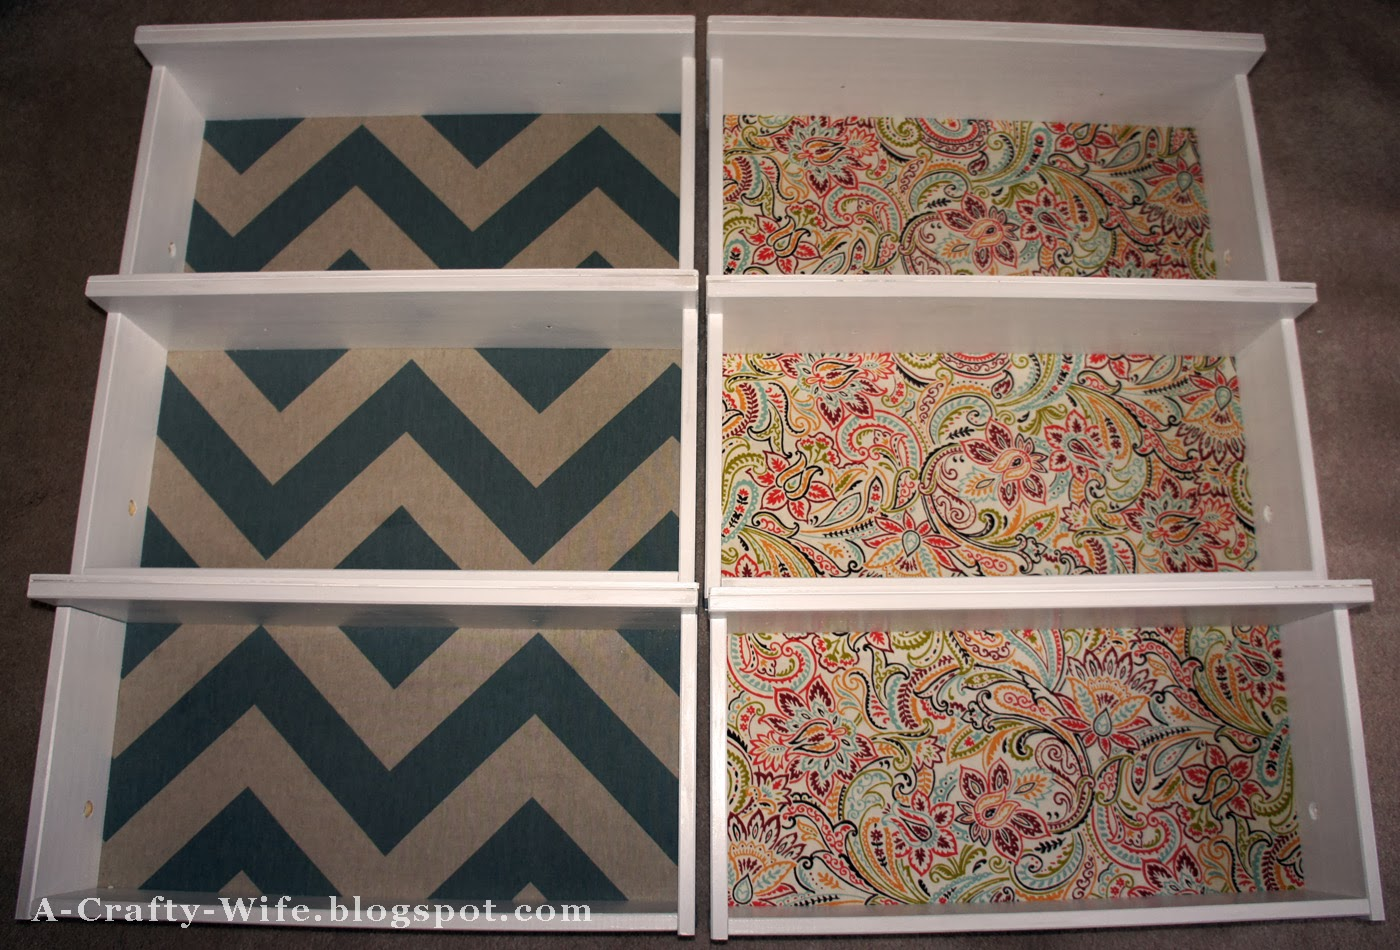 Fabric covered drawer bottoms for Ikea Rast Hack | A Crafty Wife